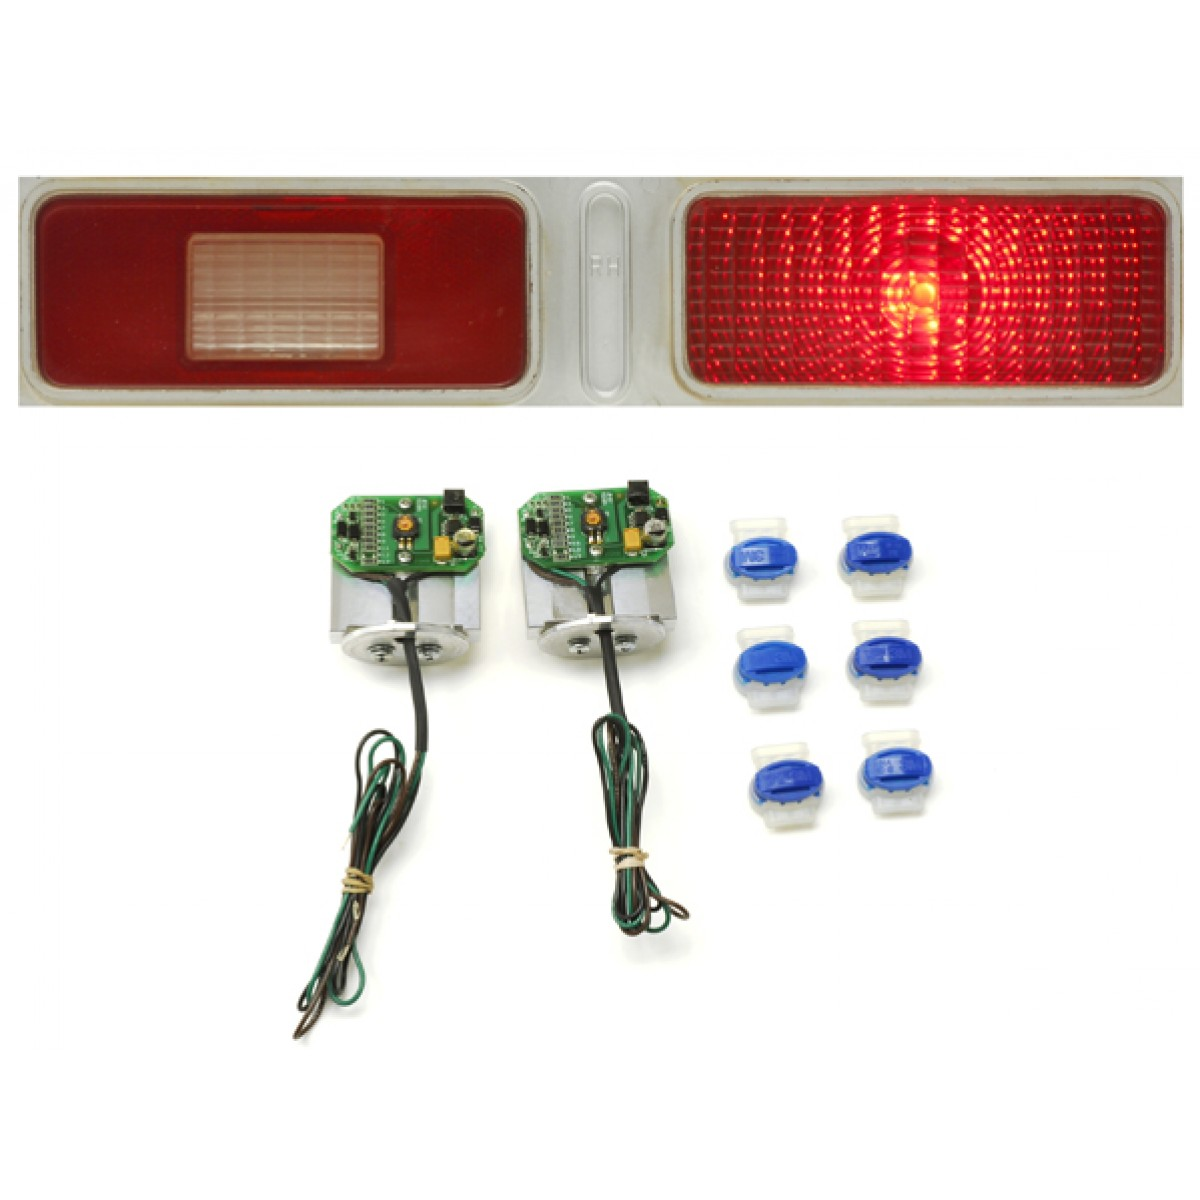 1973 1974 Chevy Nova Led Tail Lights Dakota Digital Lat